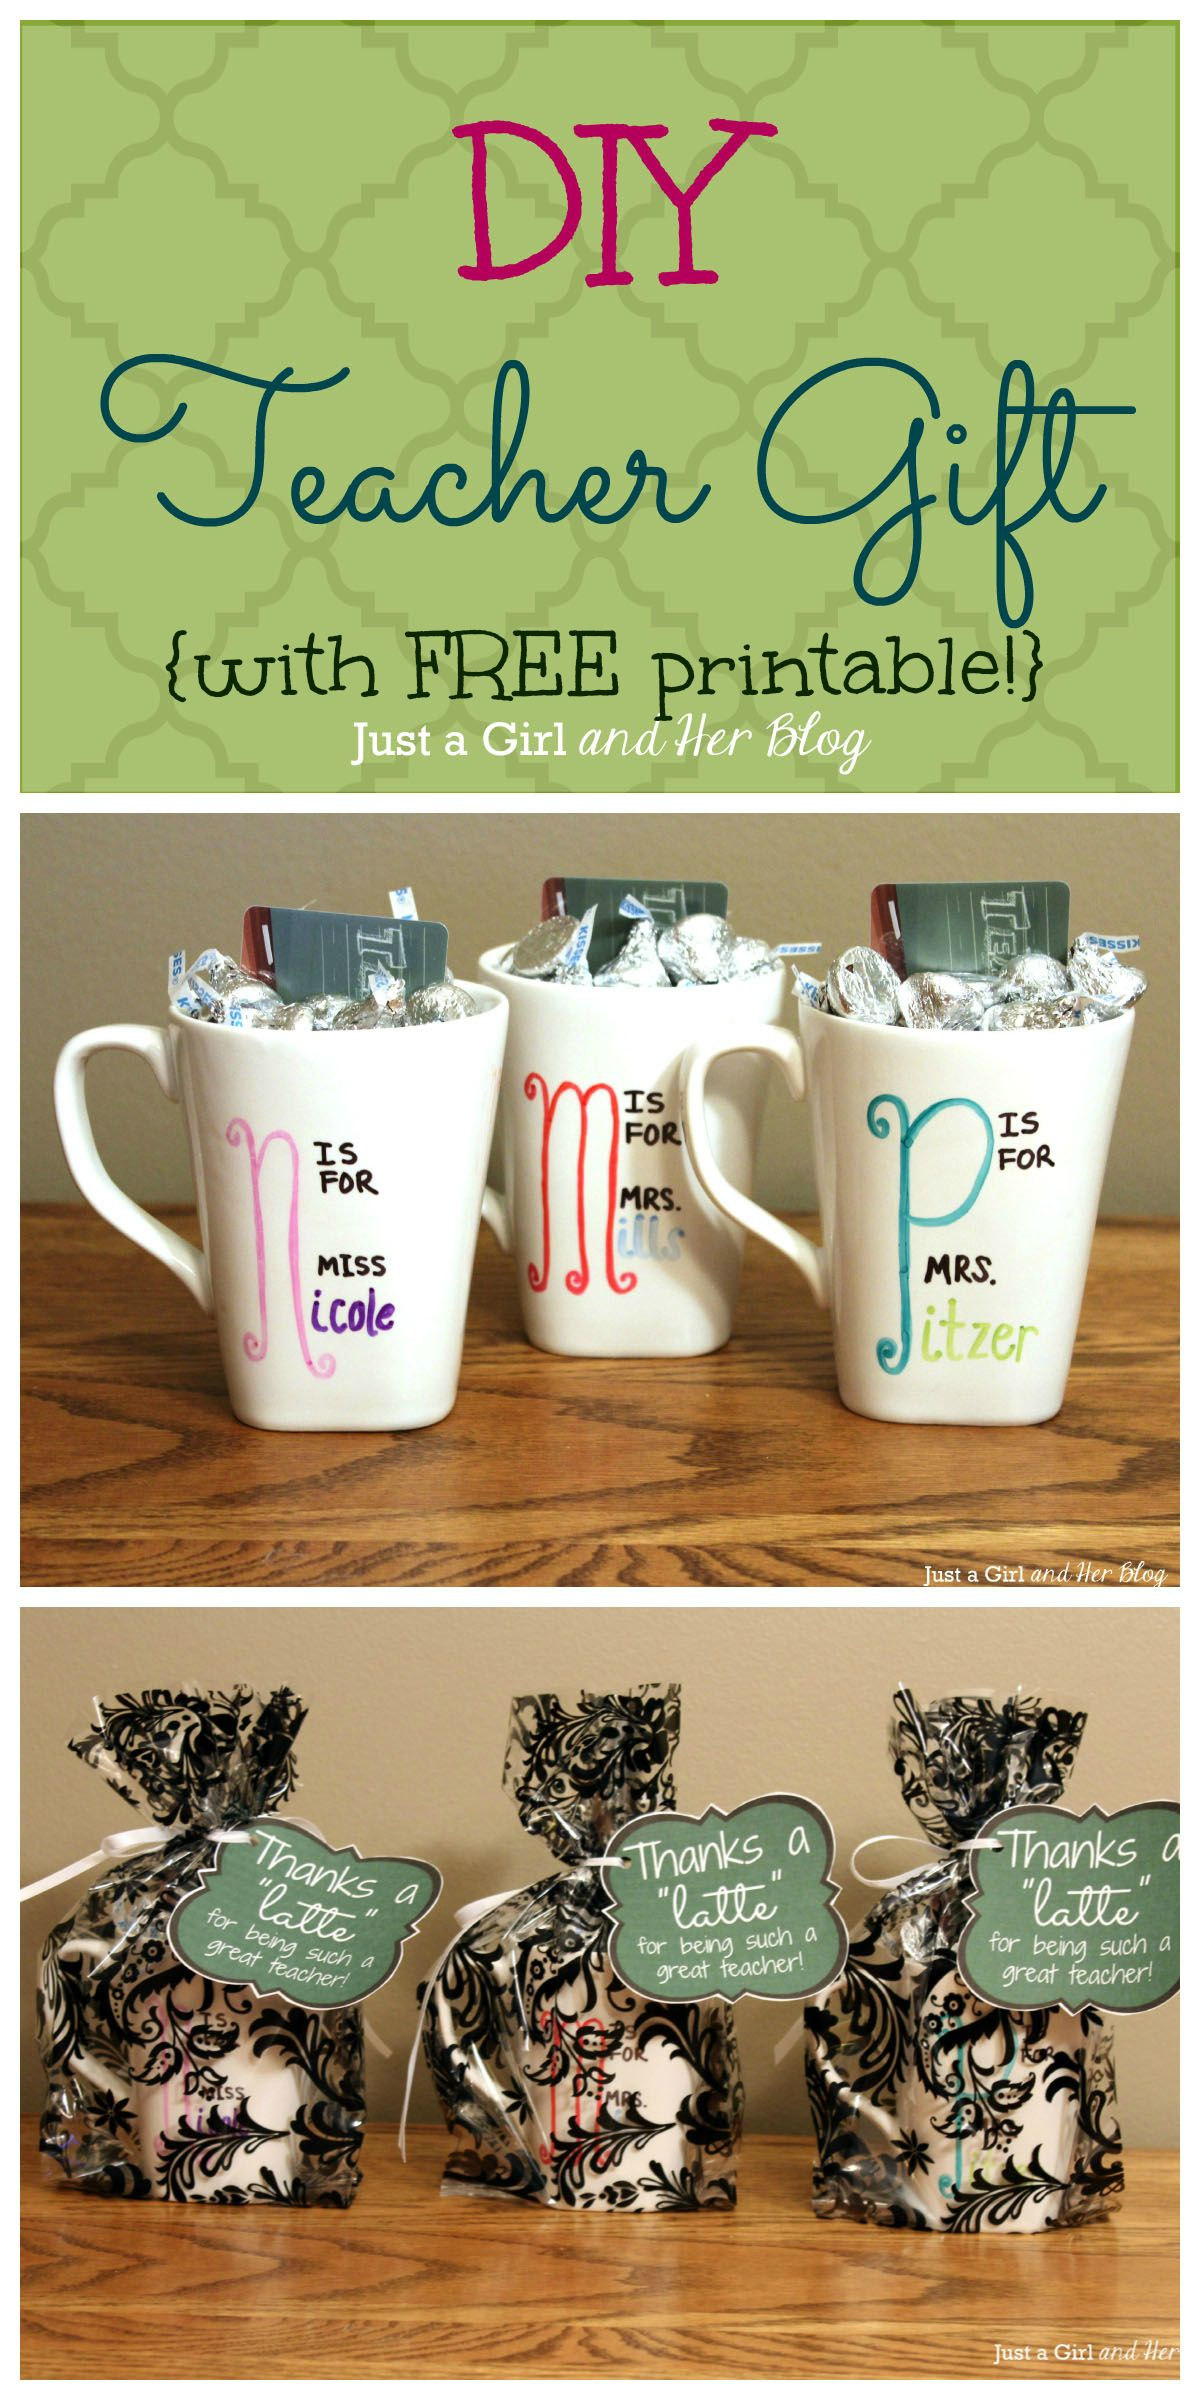 Last Minute Mama (DIY Teacher Gift with FREE Printable